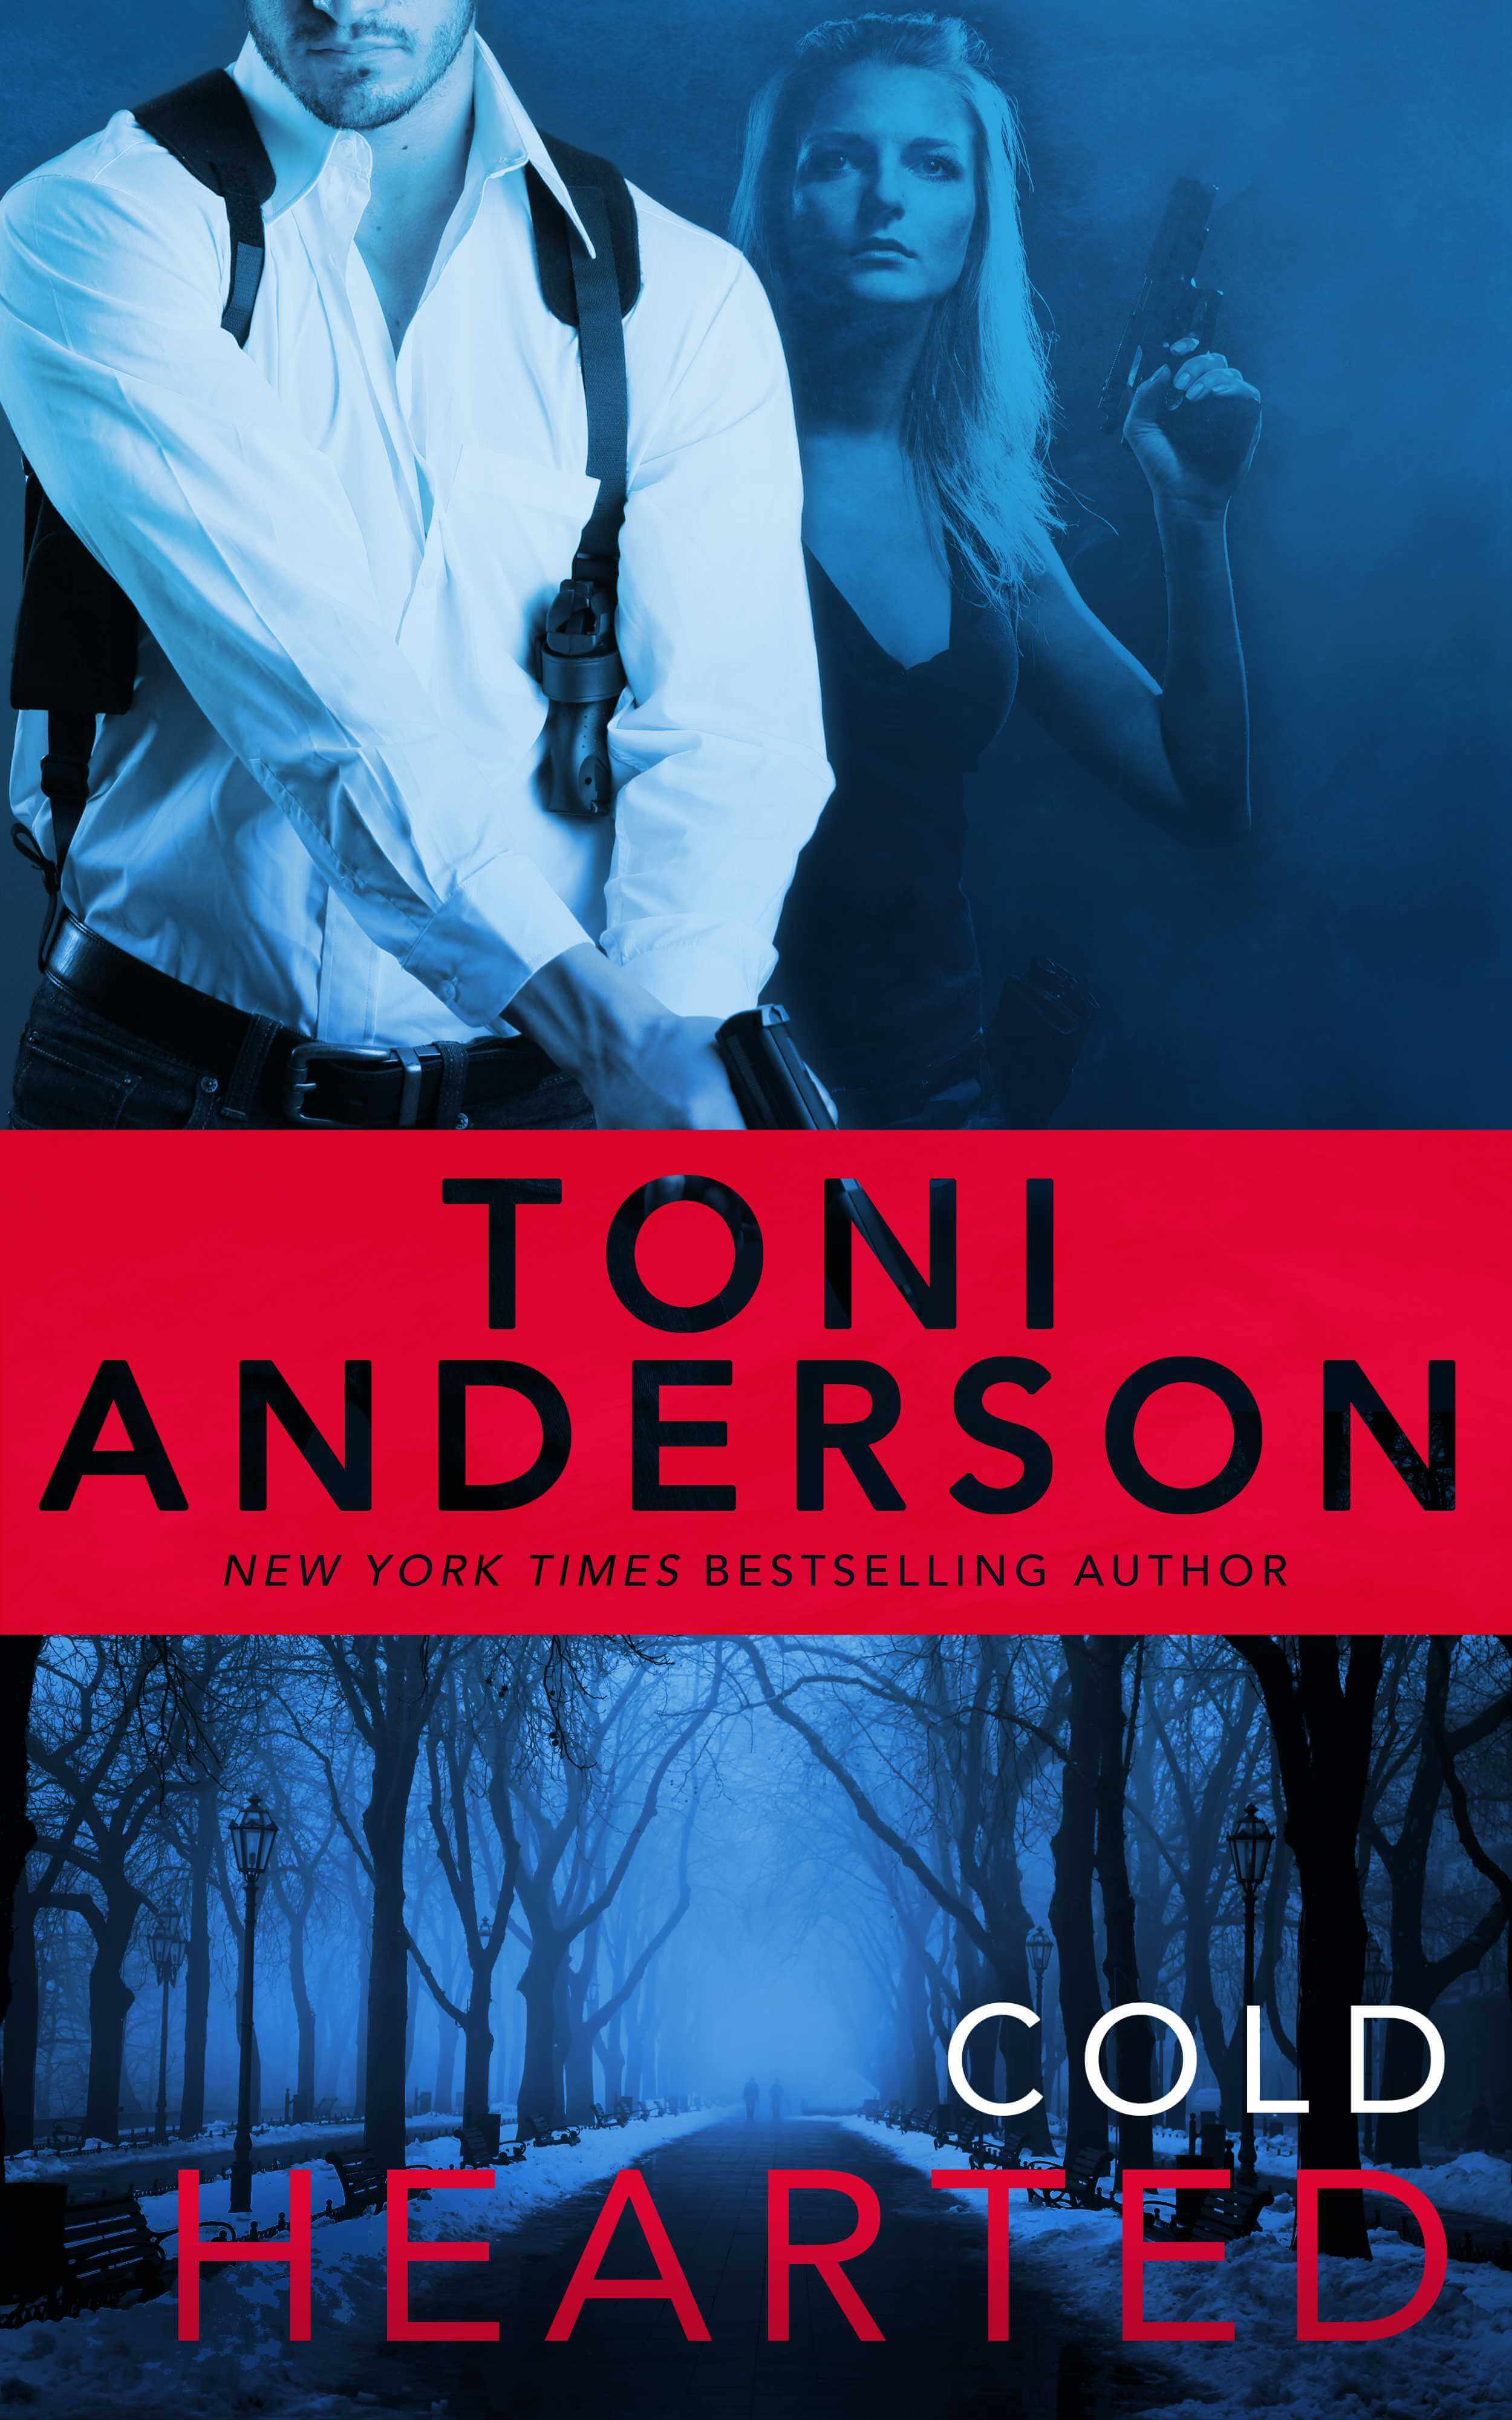 Cold Hearted by Toni Anderson: Excerpt